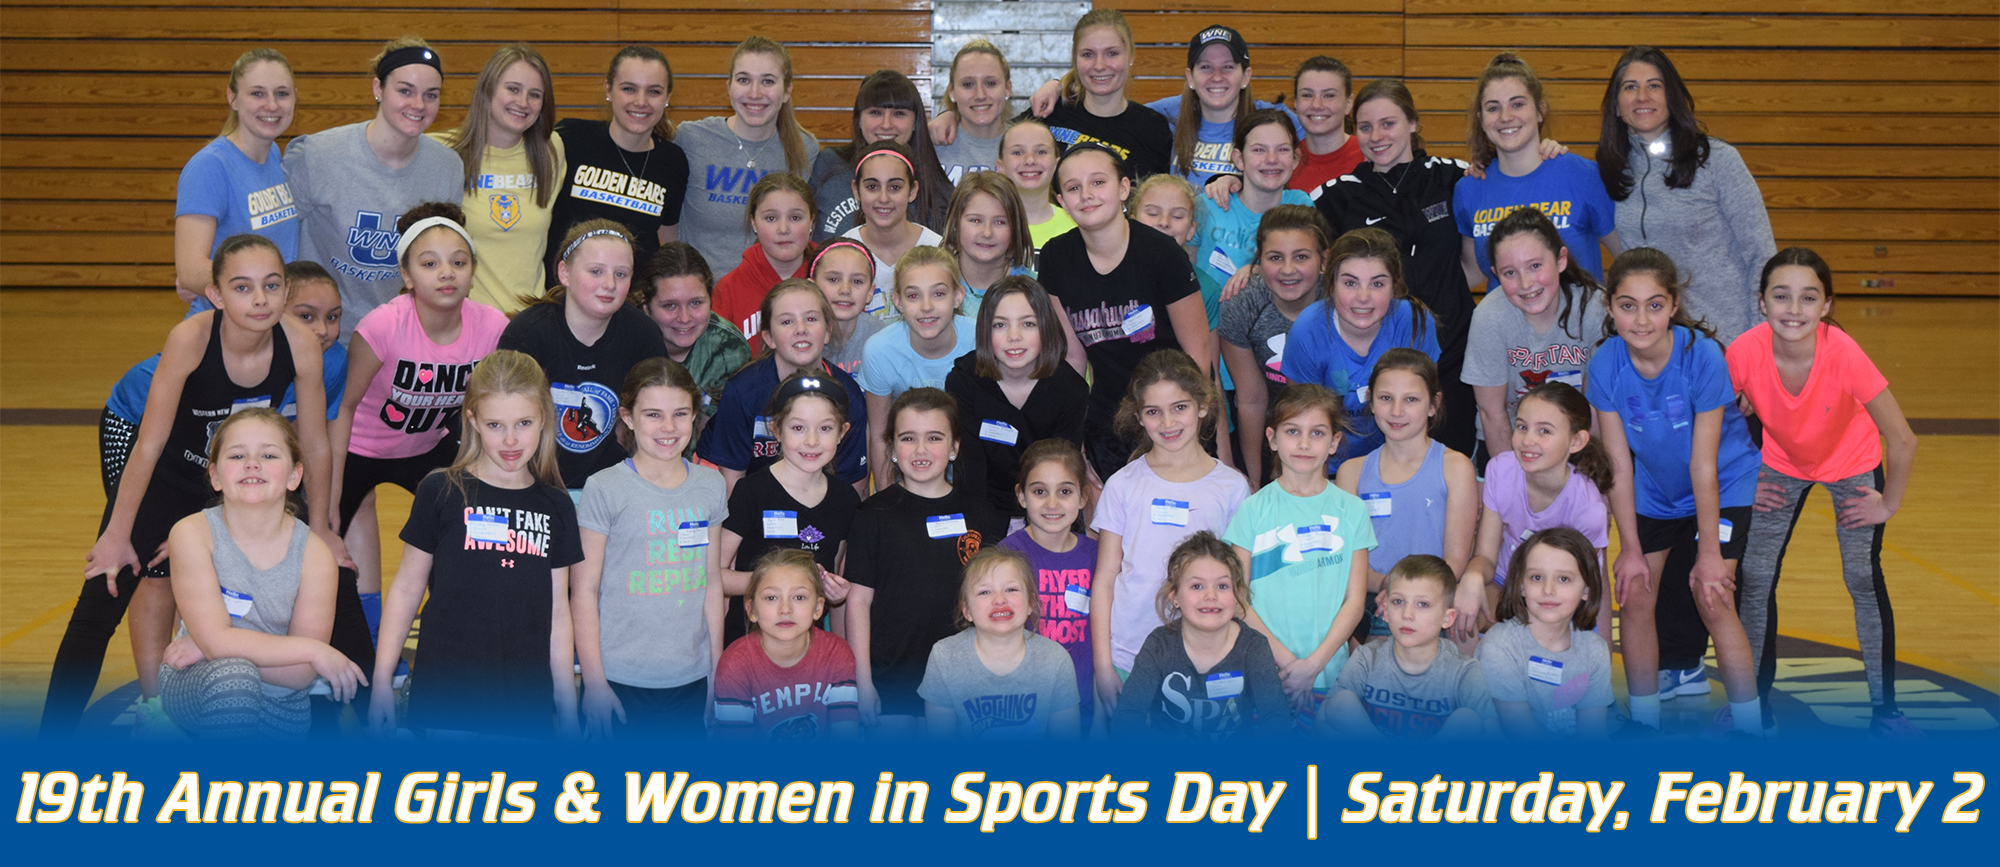 Western New England to Host 19th Annual Girls & Women in Sports Day on Saturday, February 2